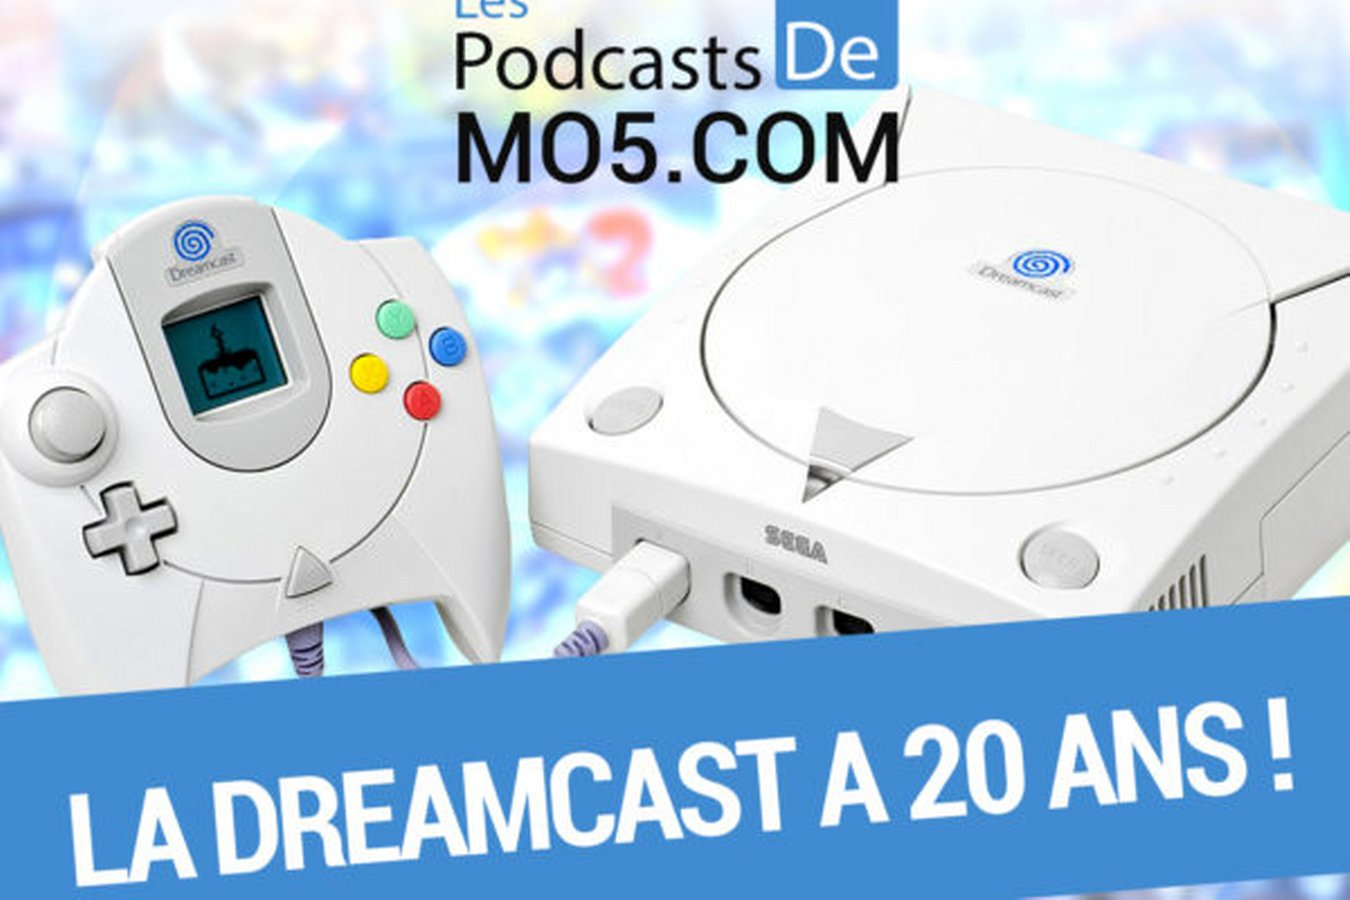 191114Podcast 20AnsDreamcast MiniatSite